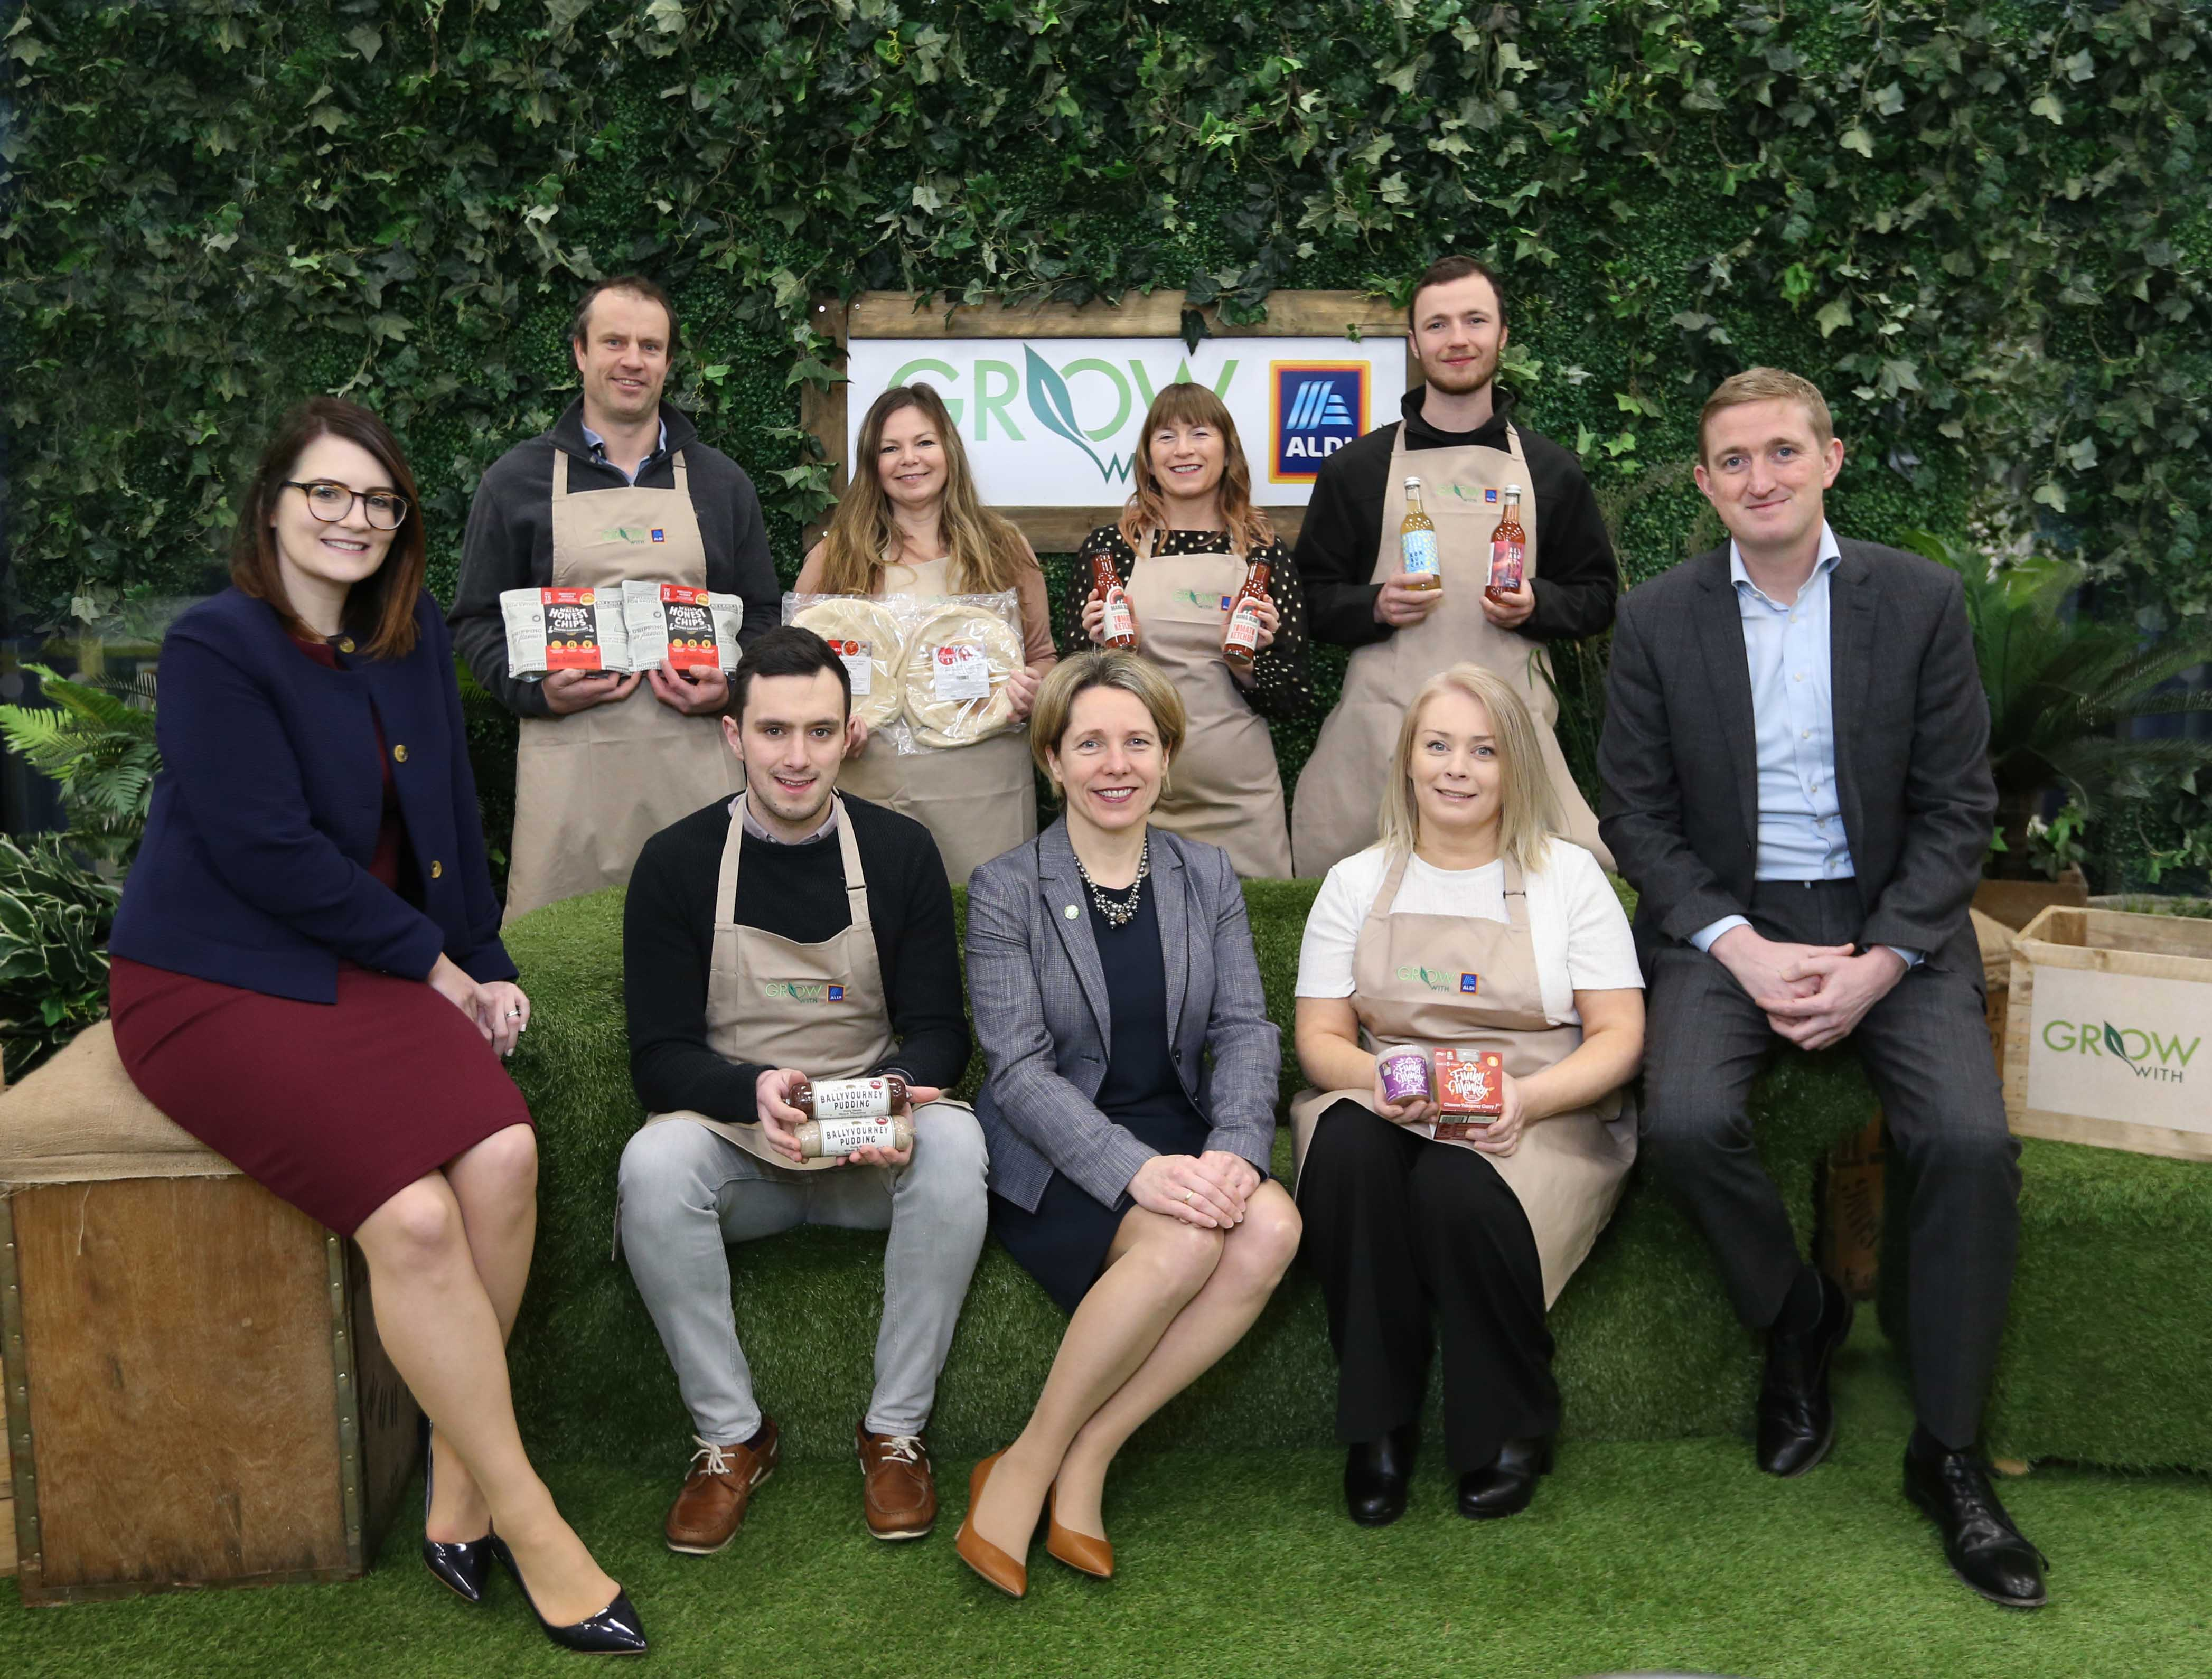 (back row L-R) Kieran Wall (Walls Honest Chips), Karen Boyd (Choice Pizza), Loretta Kennedy (Mamabear Foods), Keith Loftus (All About Kombucha) and (front row L-R) Laura Harper (Aldi), Cathal Allen (Ballyvourney Pudding), Tara McCarthy (Bord Bia), Deborah Crowley (Funky Monkey Food) and Padraig Barry (Aldi)